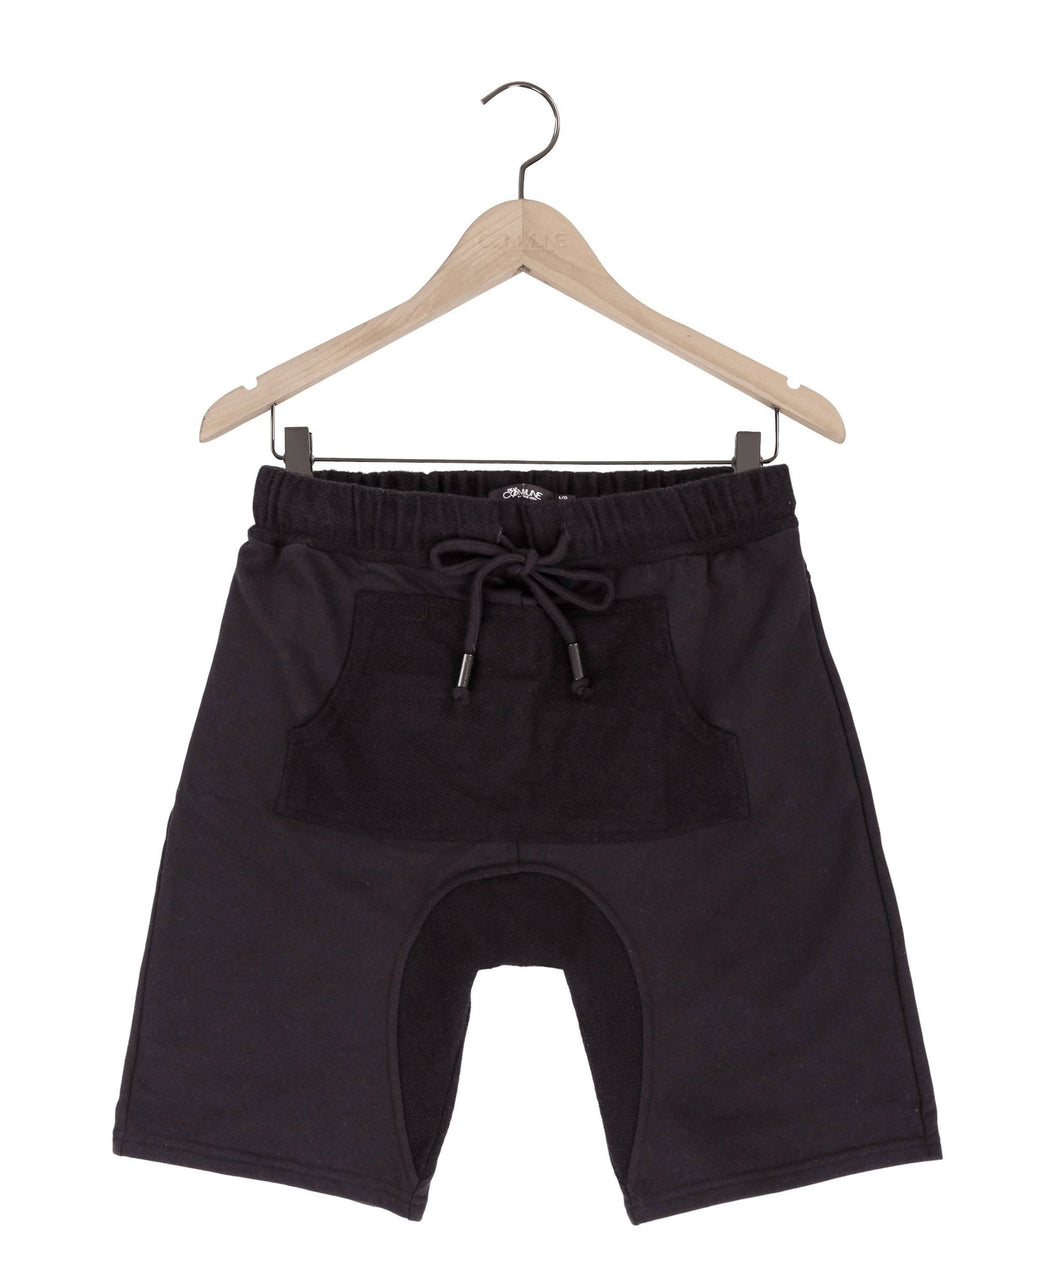 Jasper drop crotch french terry shorts in black